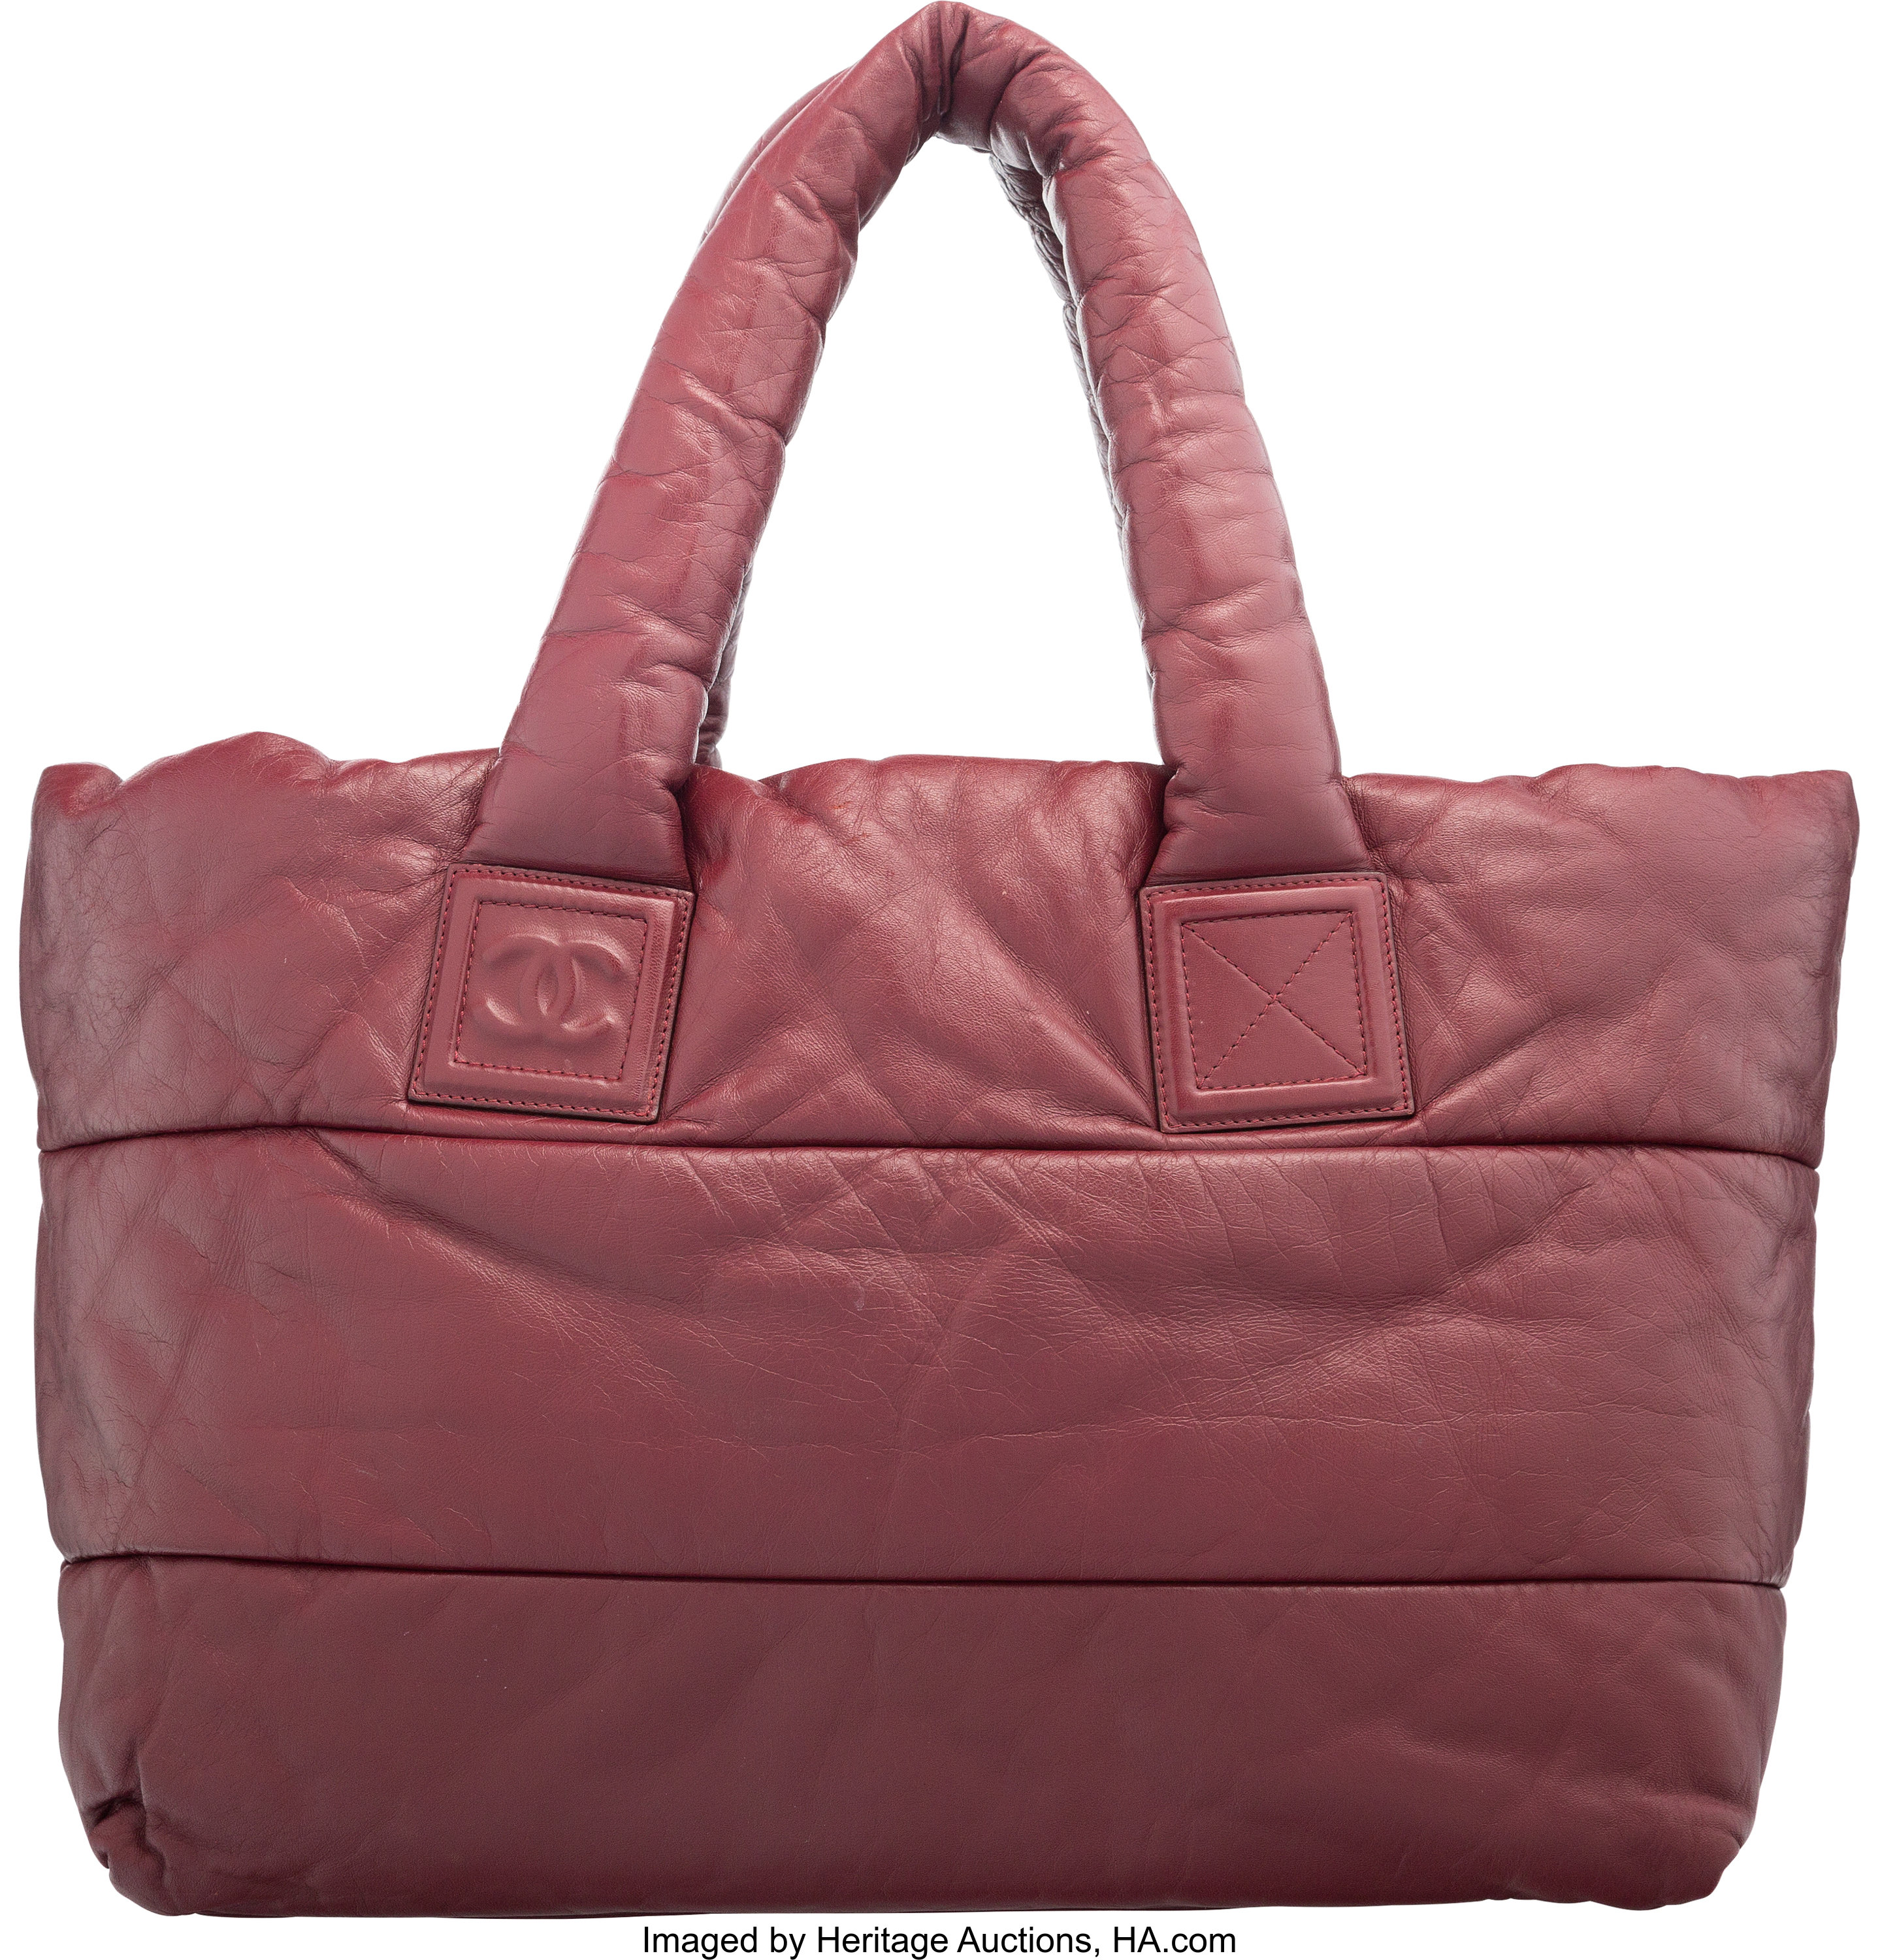 2ef249687 Chanel Red Lambskin Leather Coco Cocoon Tote Bag with Silver | Lot #58364 |  Heritage Auctions